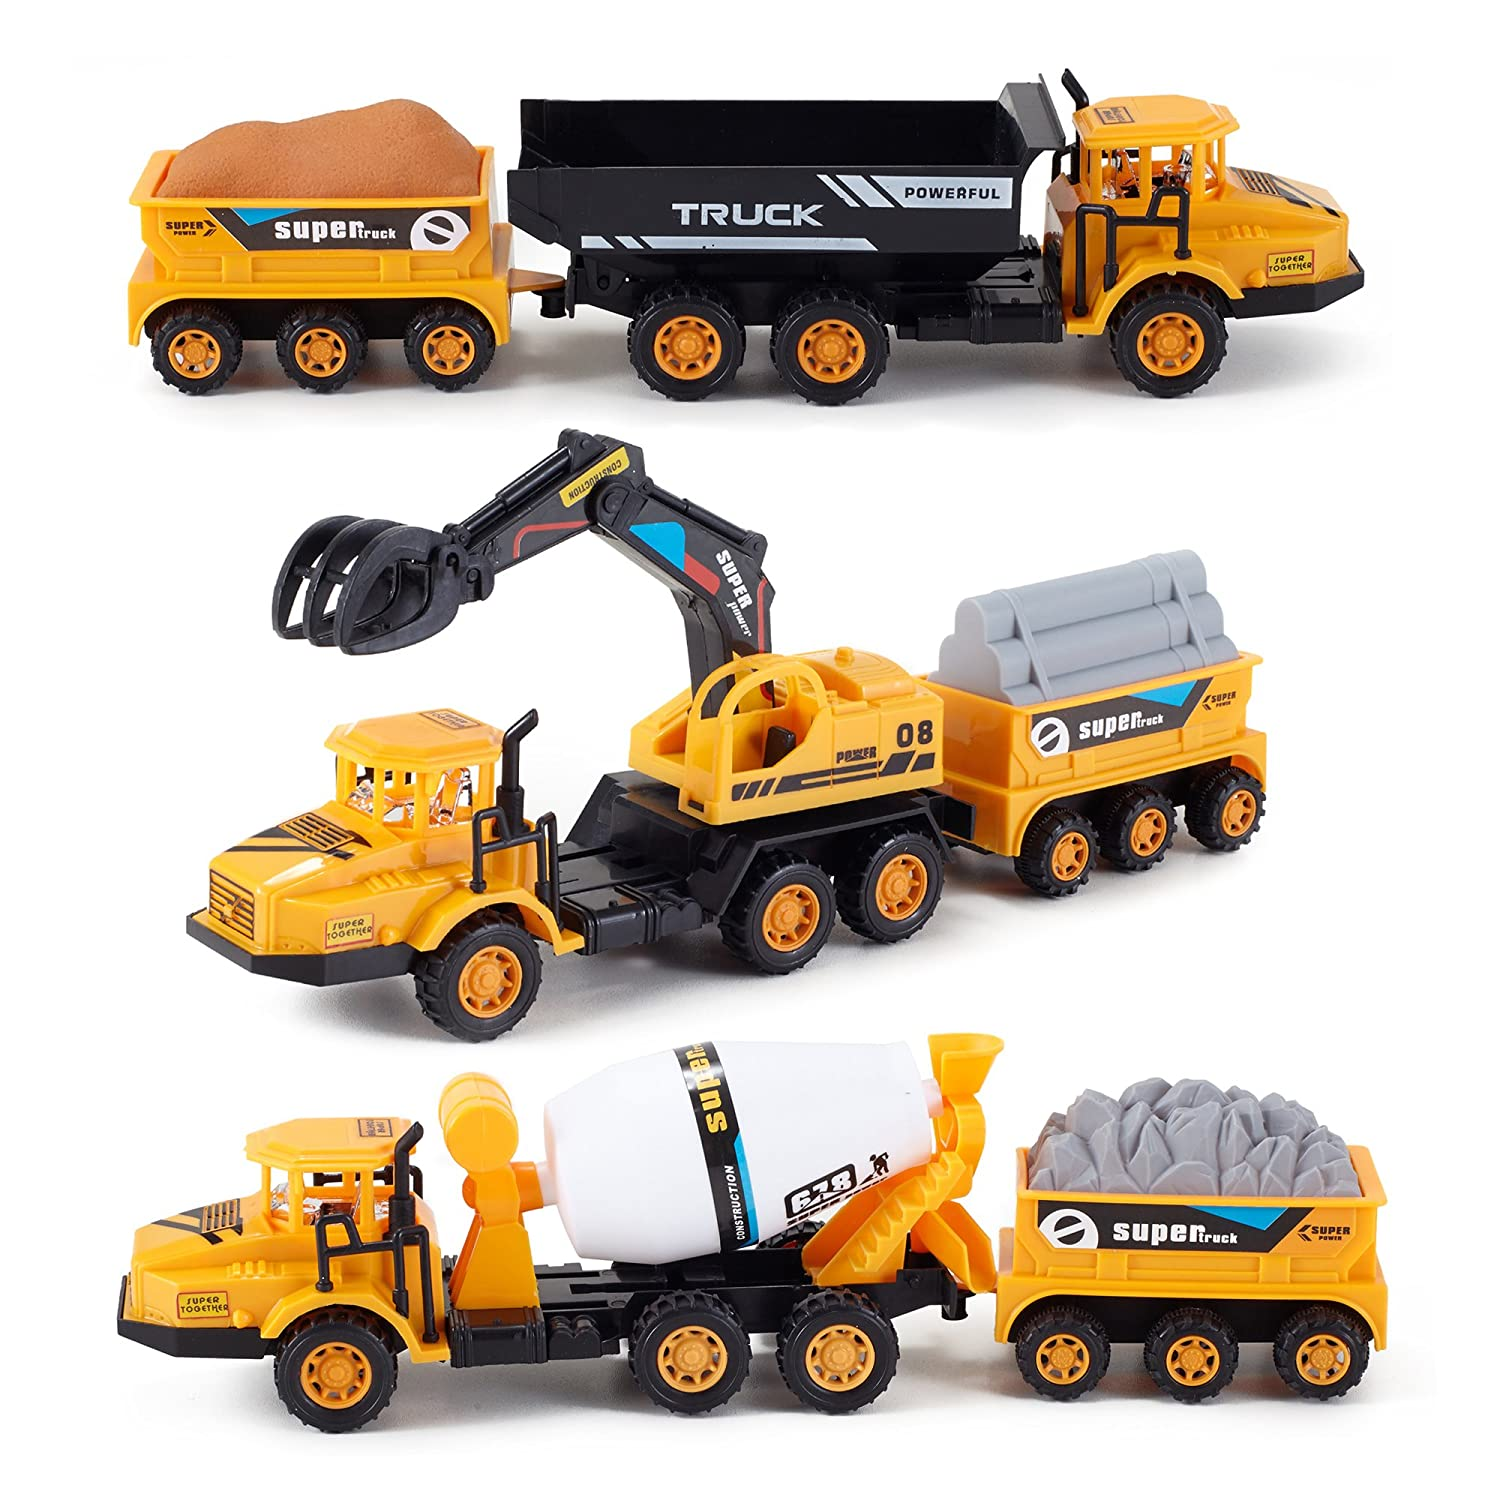 Amazon.com: Liberty Imports Set of 3 Deluxe Construction Toy ...